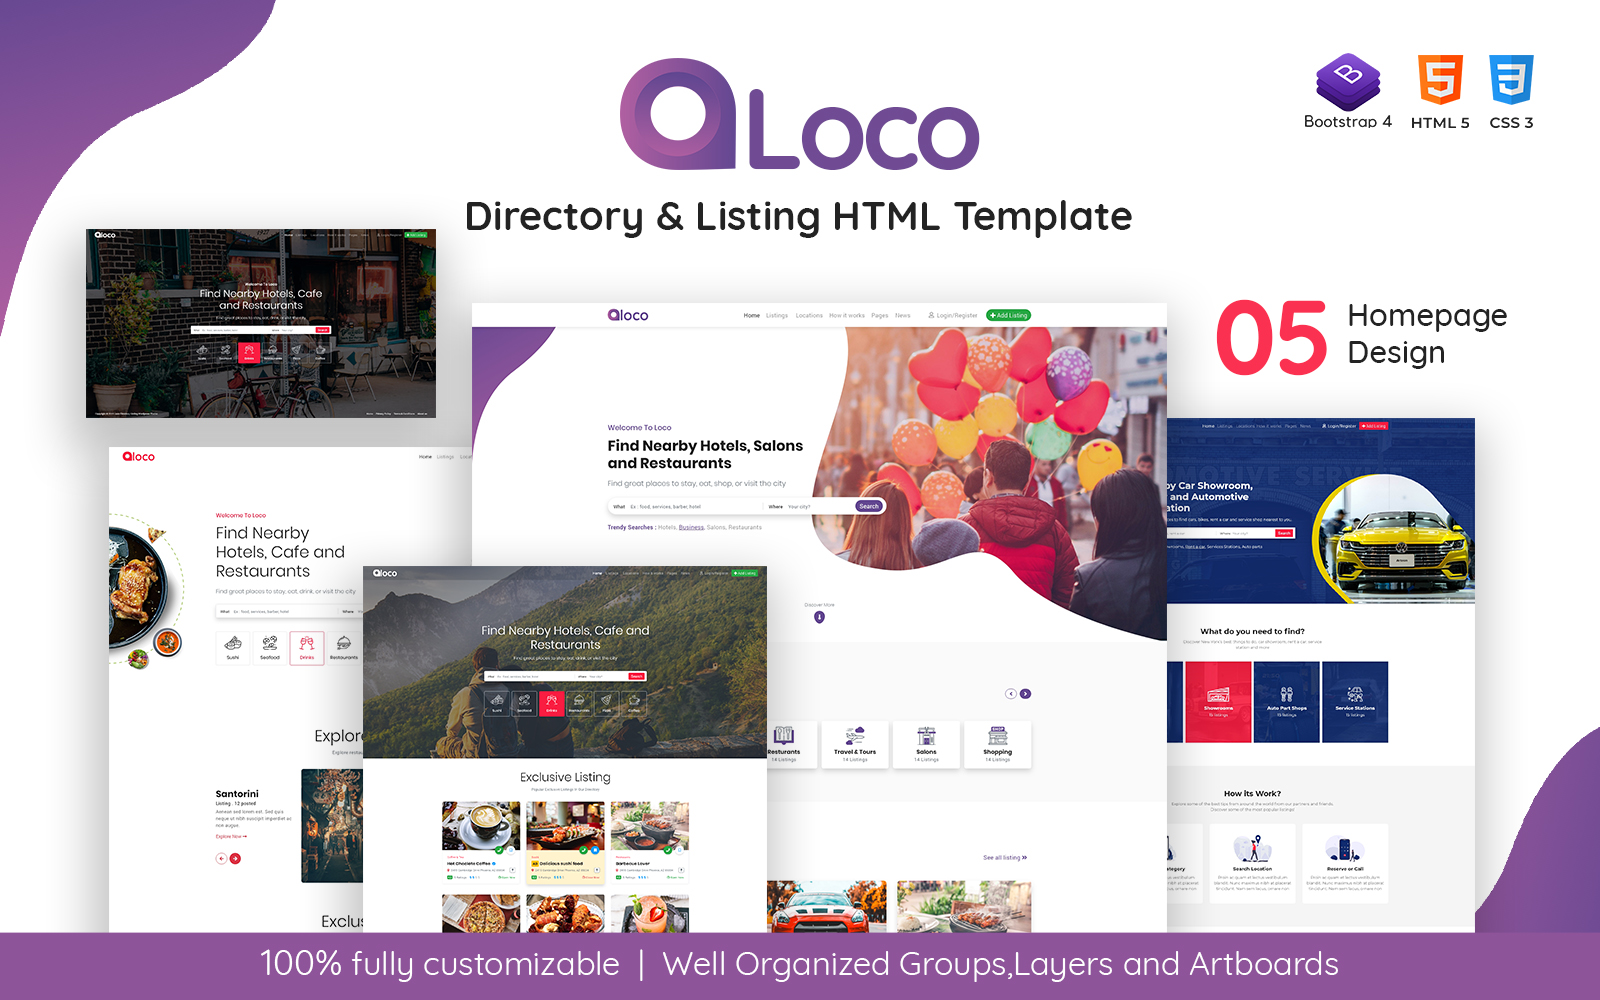 Loco - Directory Listing HTML Template